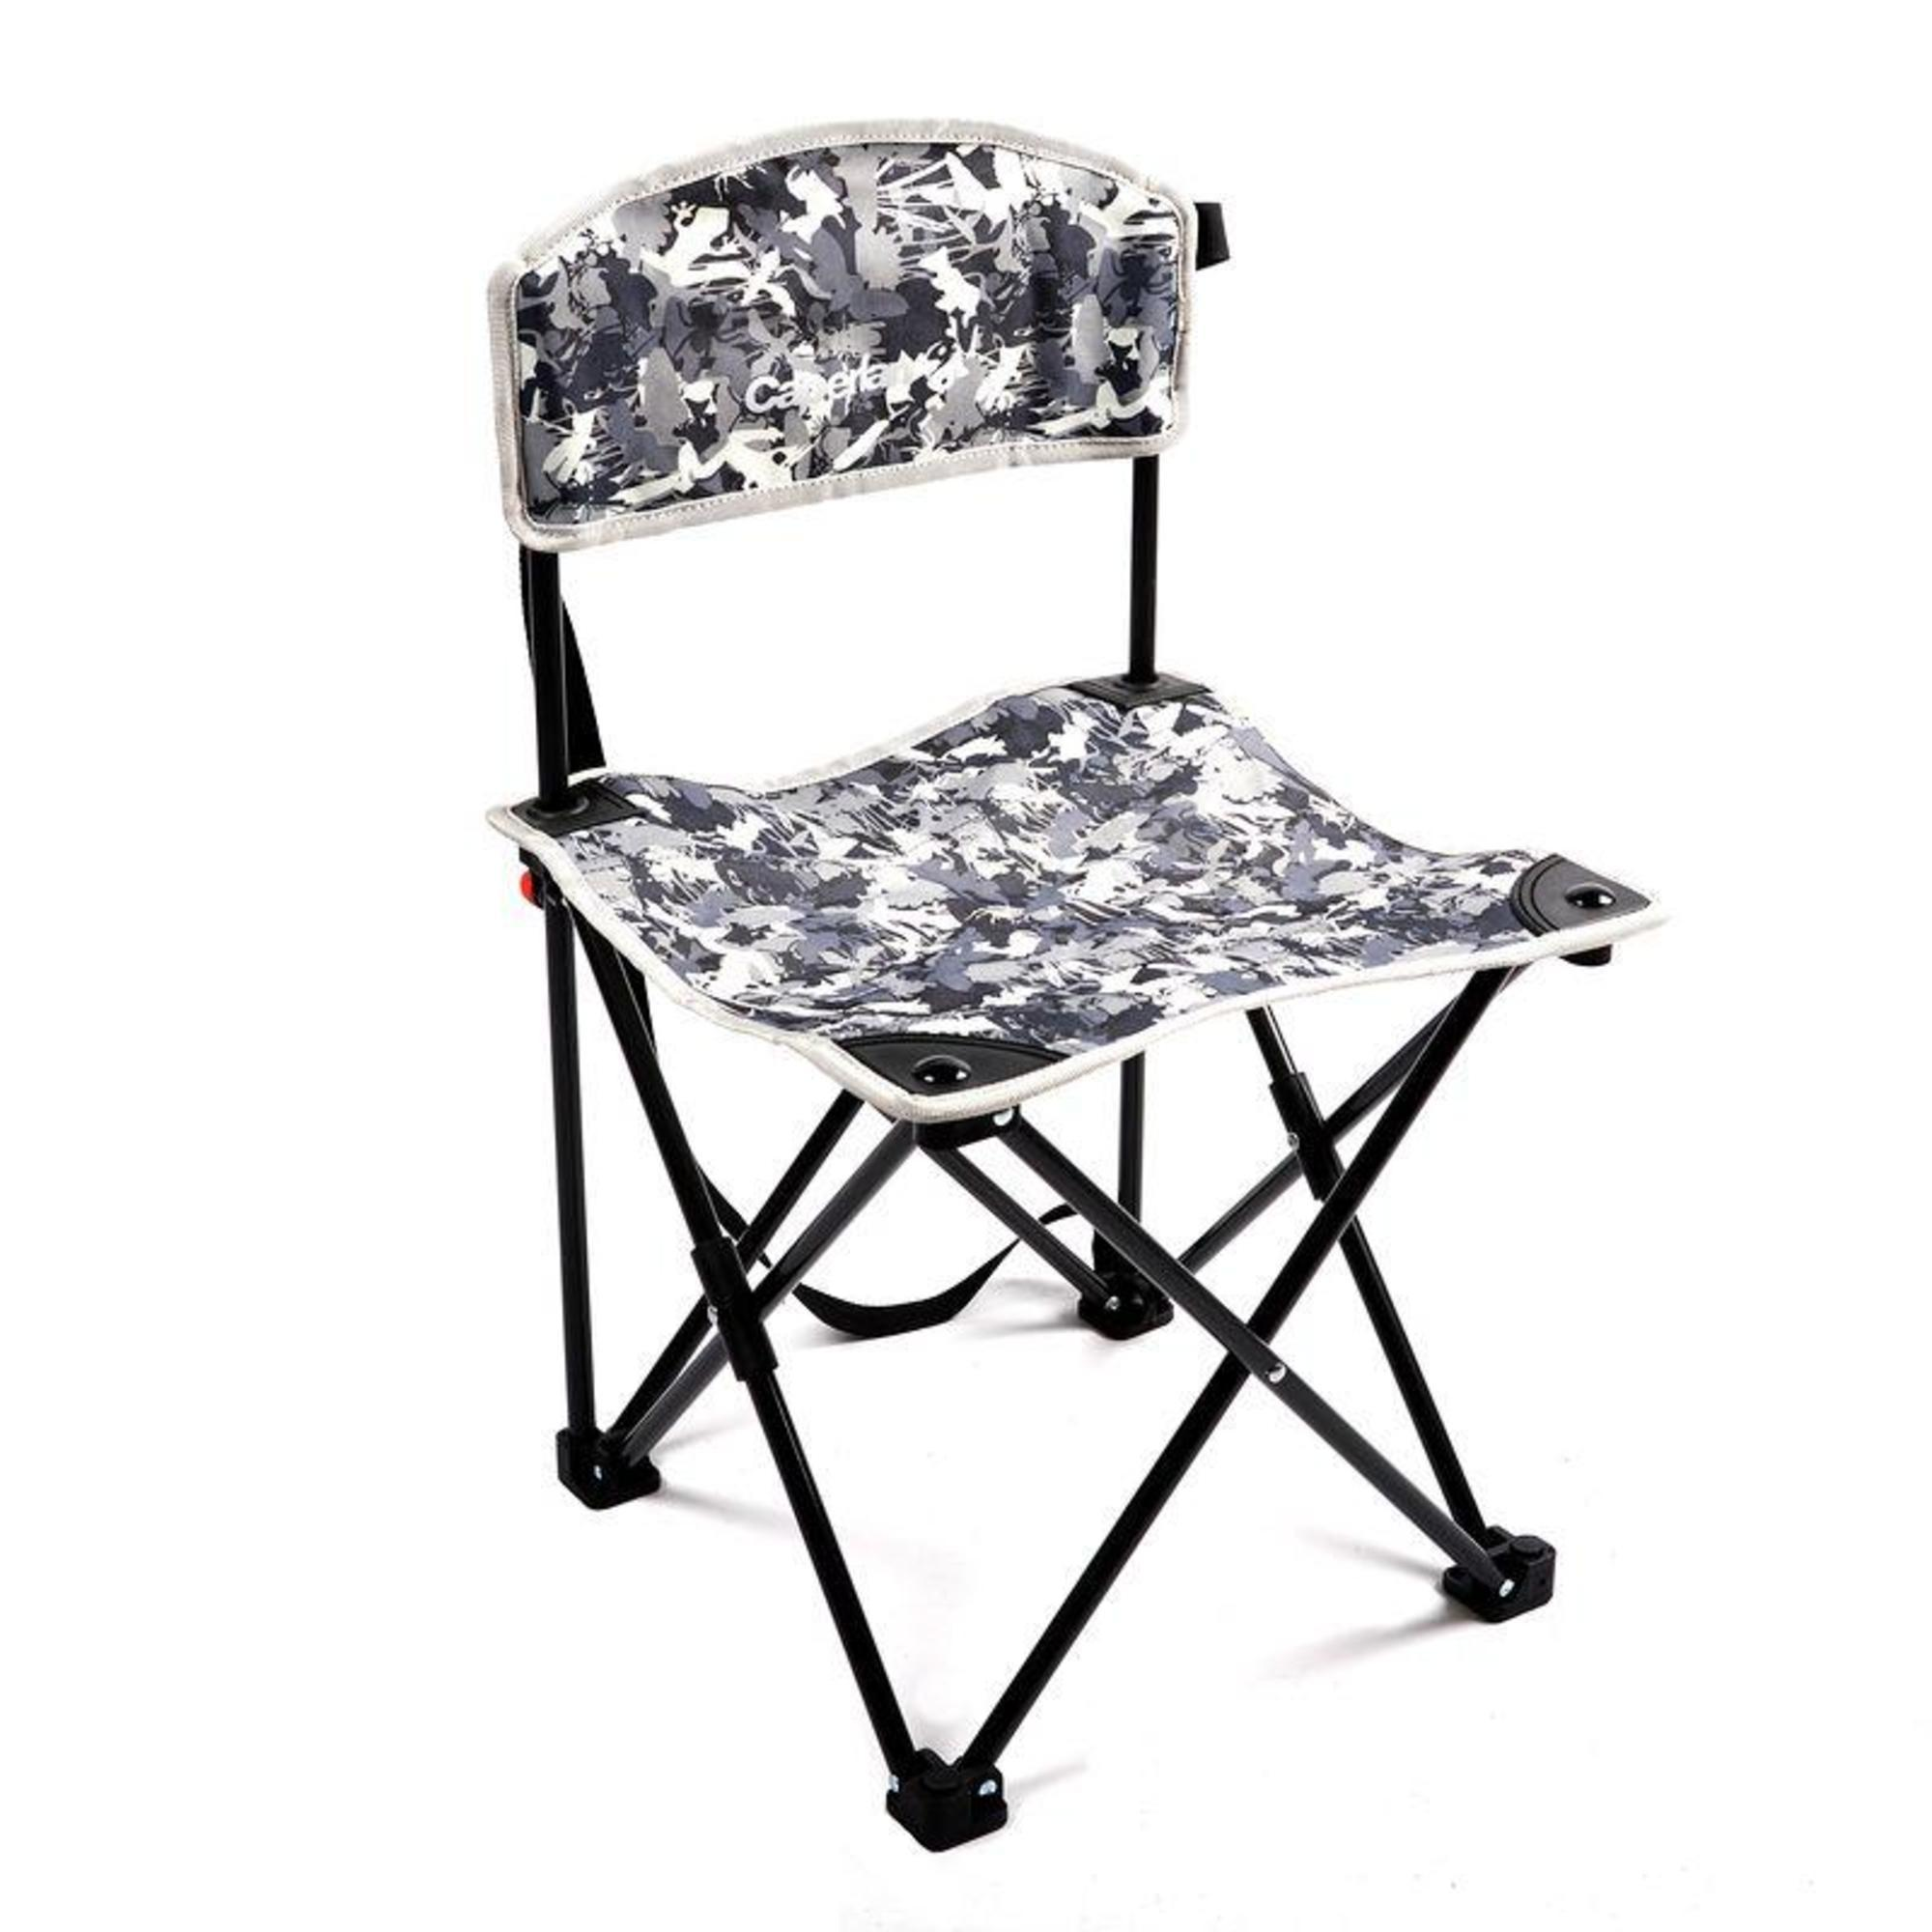 Admirable Fishing Place Equipement Essenseat Compact Kif Folding Fishing Chair Camellatalisay Diy Chair Ideas Camellatalisaycom